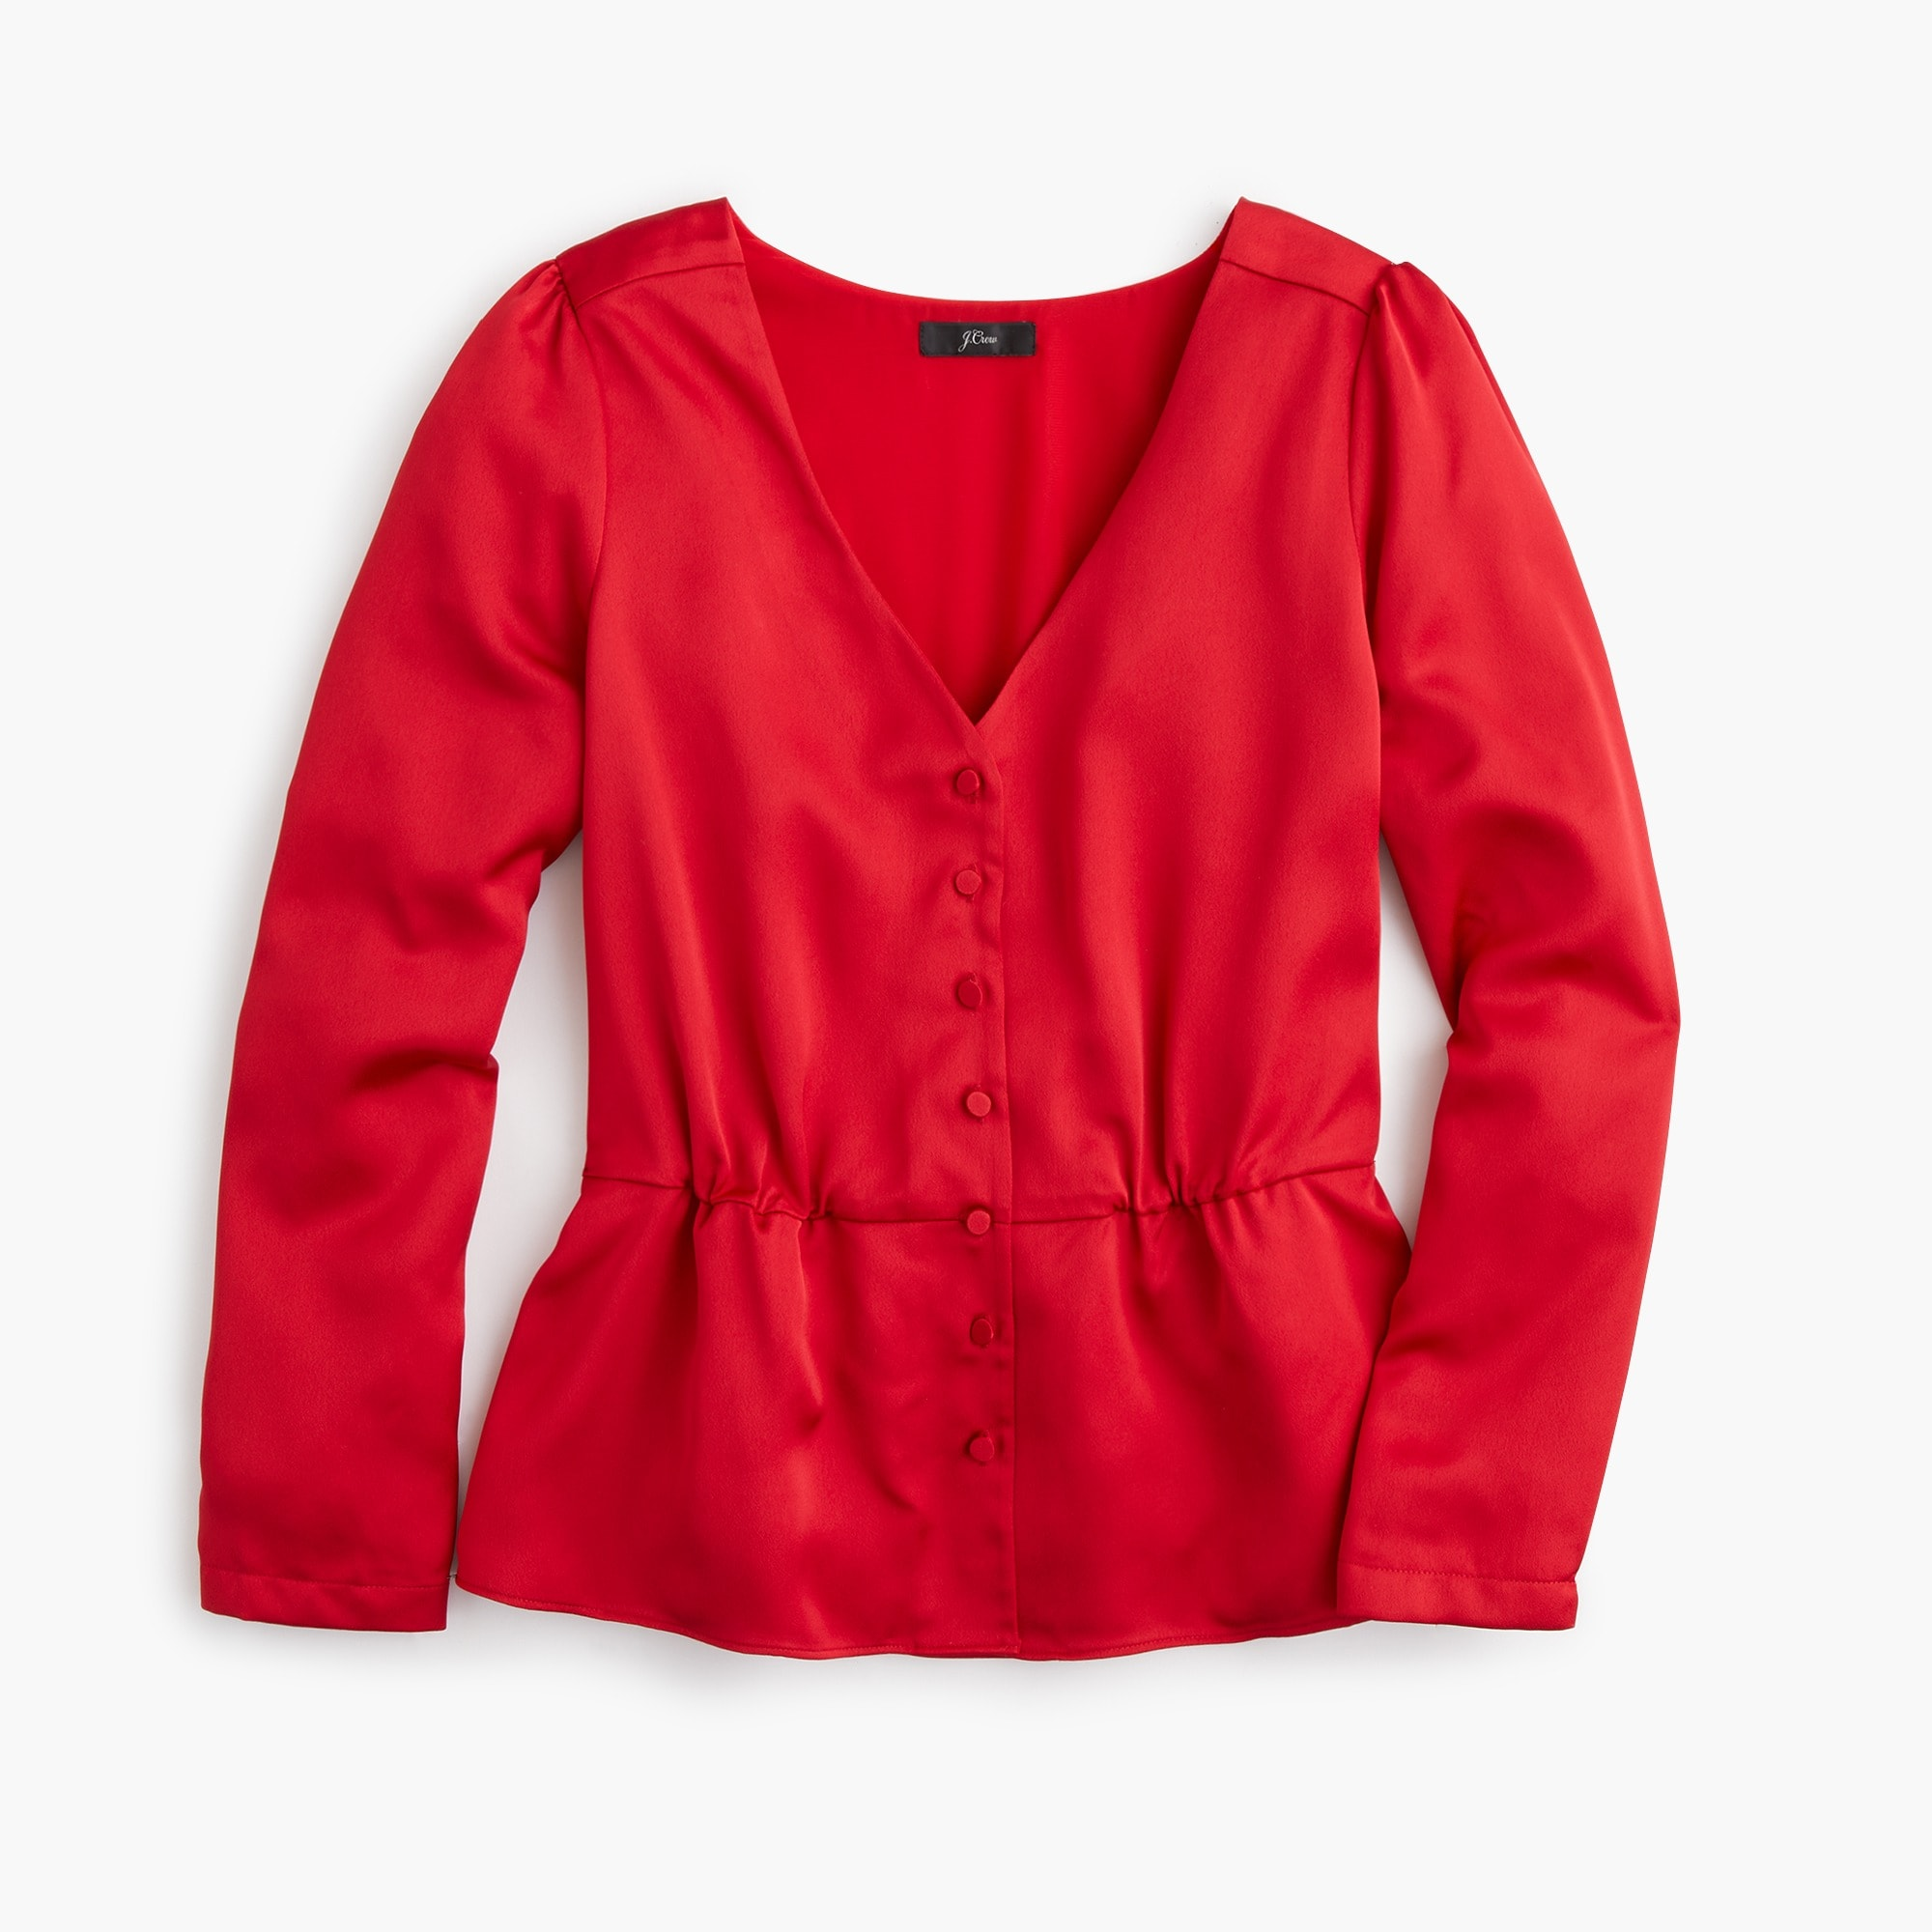 Image 6 for Long-sleeve peplum top in satin-crepe